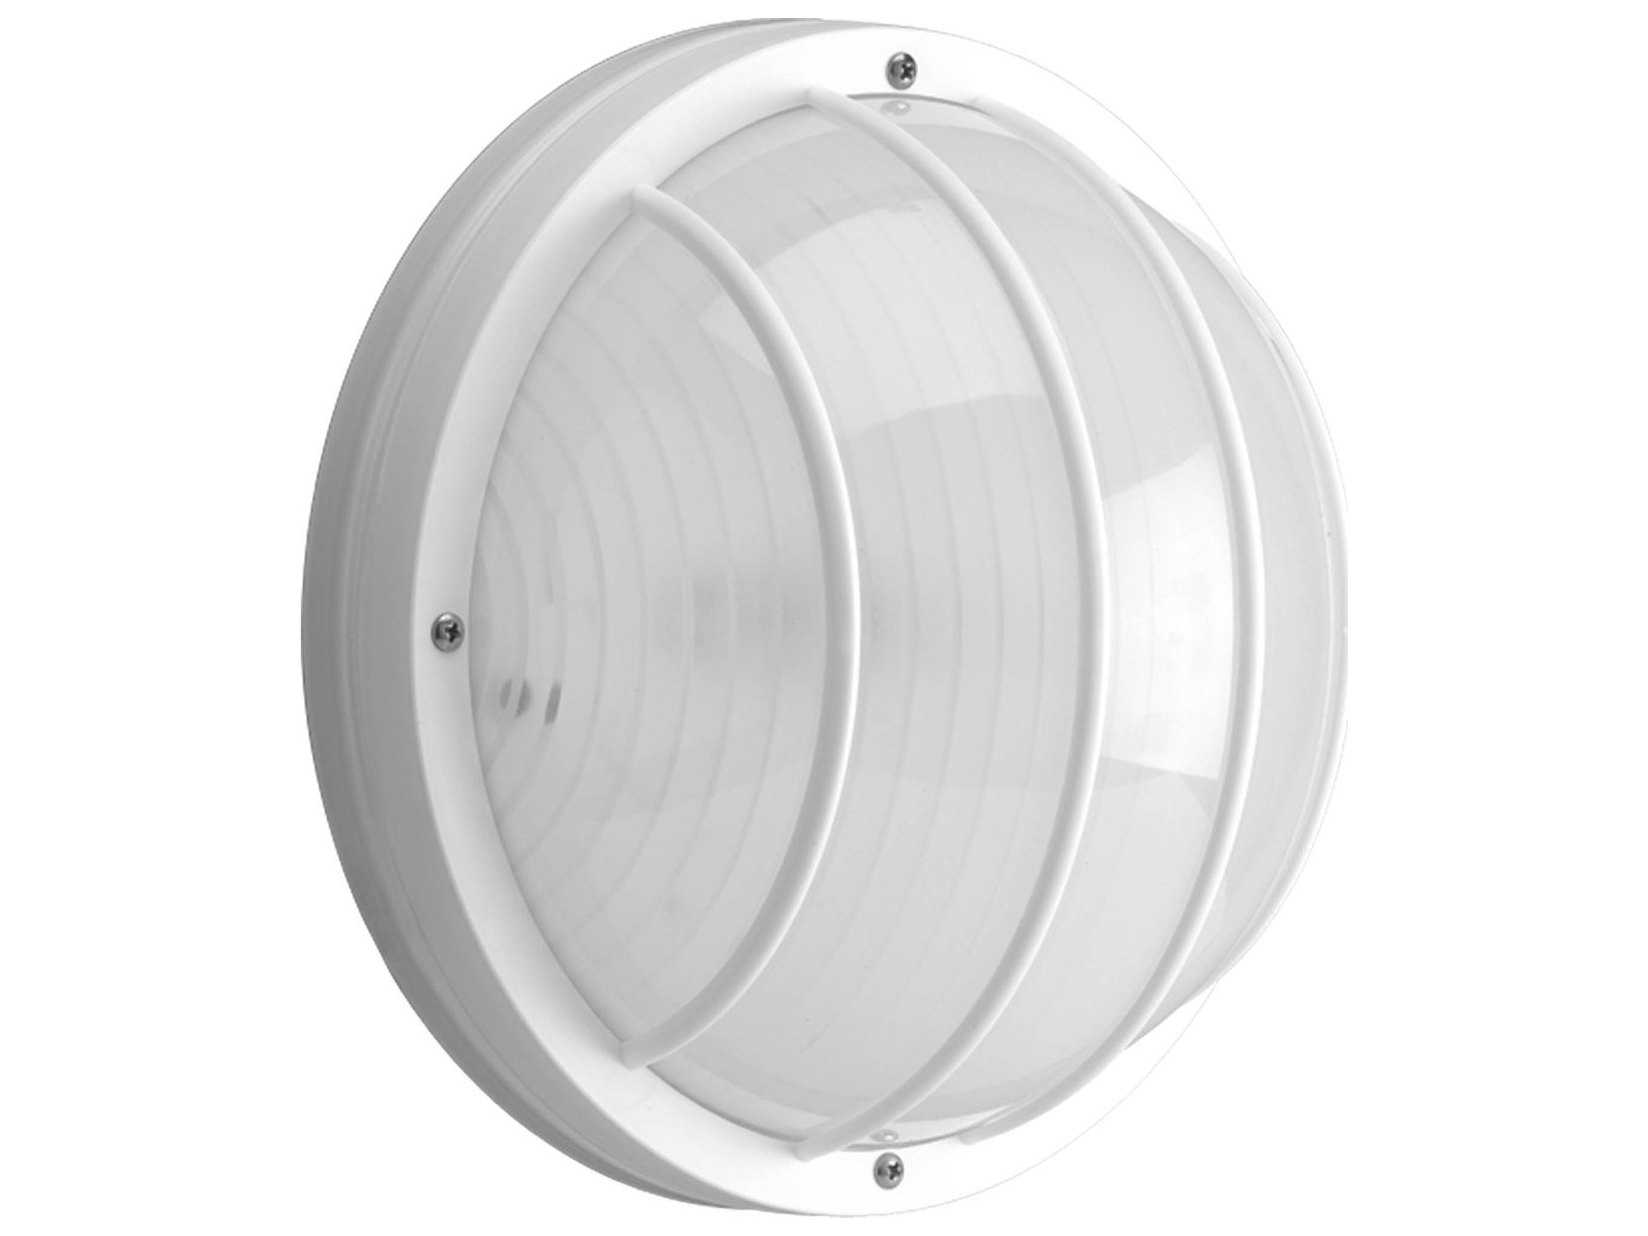 Progress Lighting Non-Metallic White Two-Light Outdoor Wall Light P7337-30EBWB